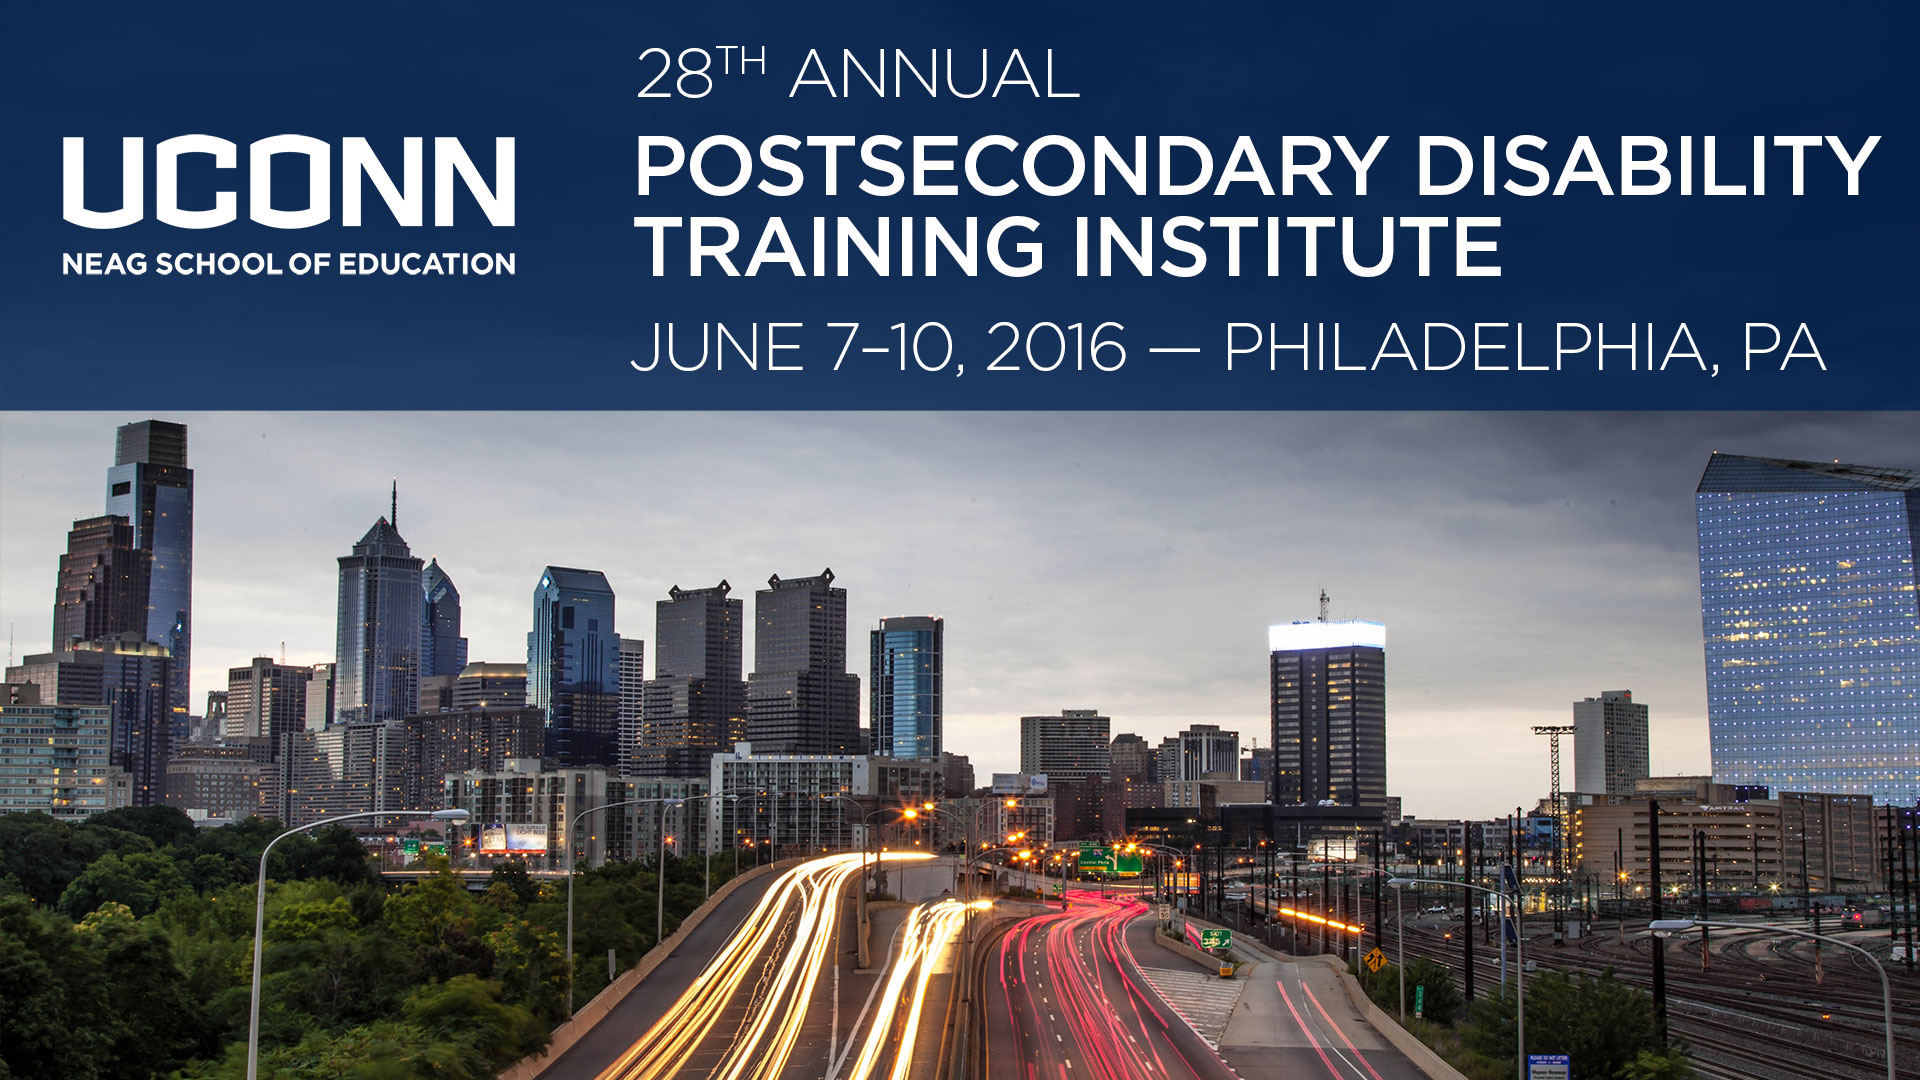 PTI 2016 - June 7-10, 2016 in Philadelphia PA